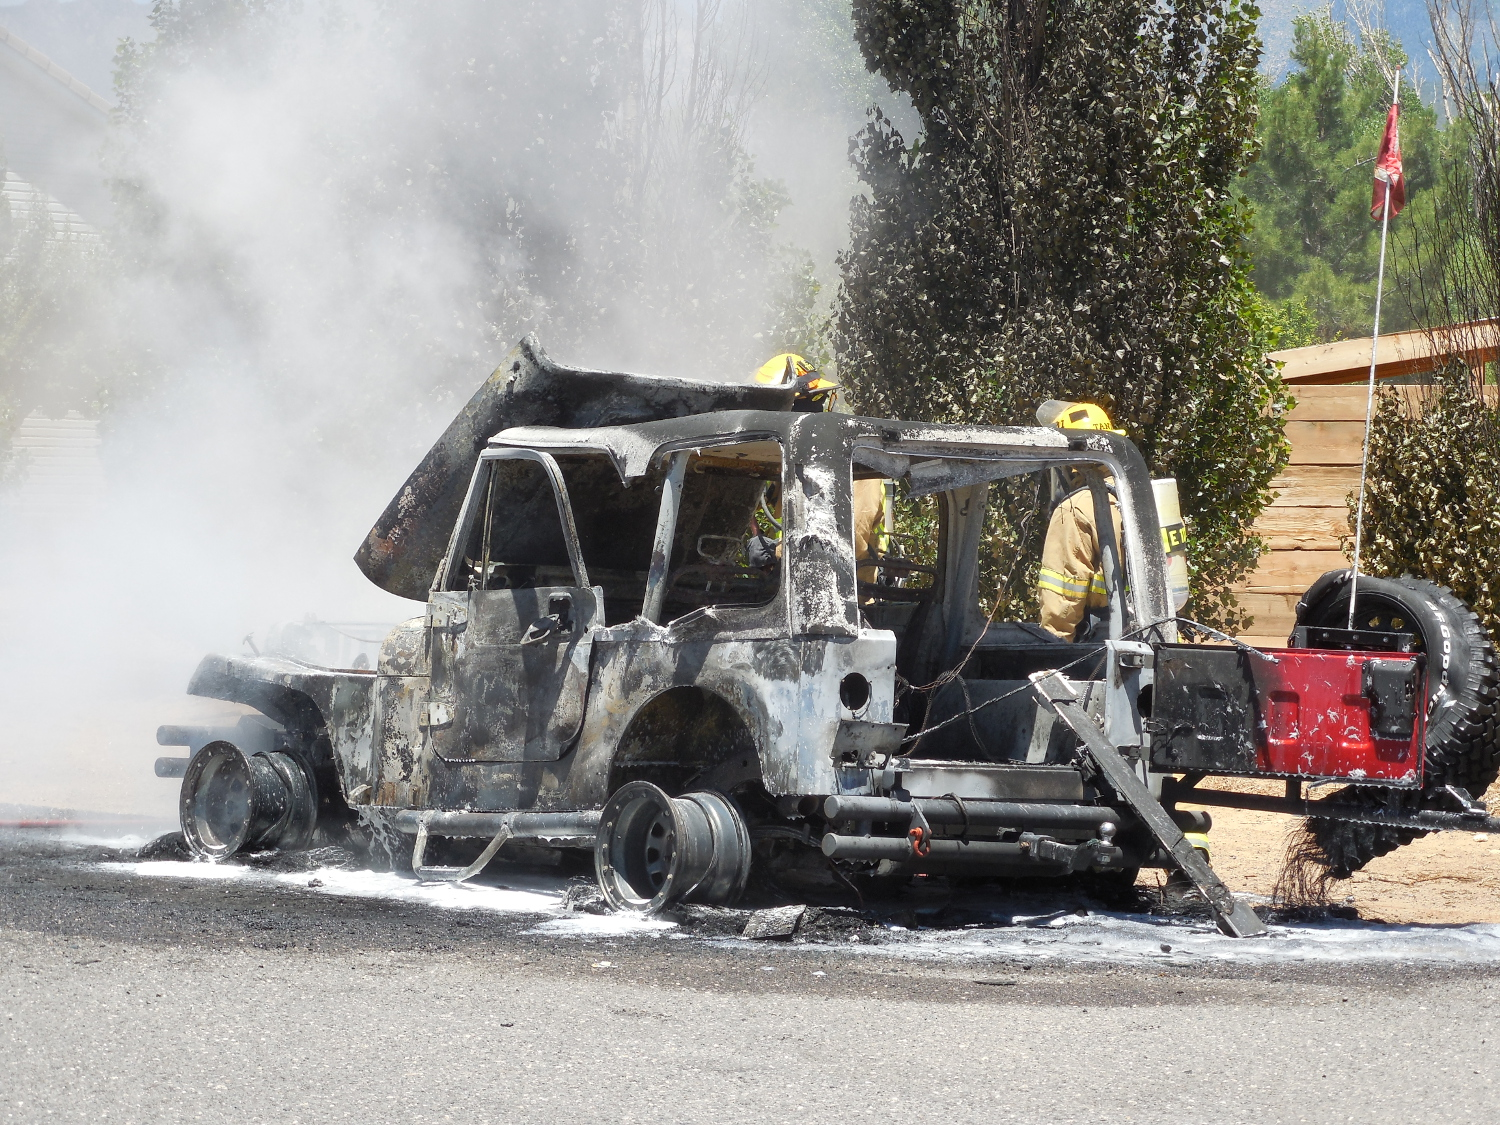 A Jeep burns in Diamond Valley Friday afternoon, Diamond Valley, Utah, June 17, 2017 | Photo by Julie Applegate, St. George News